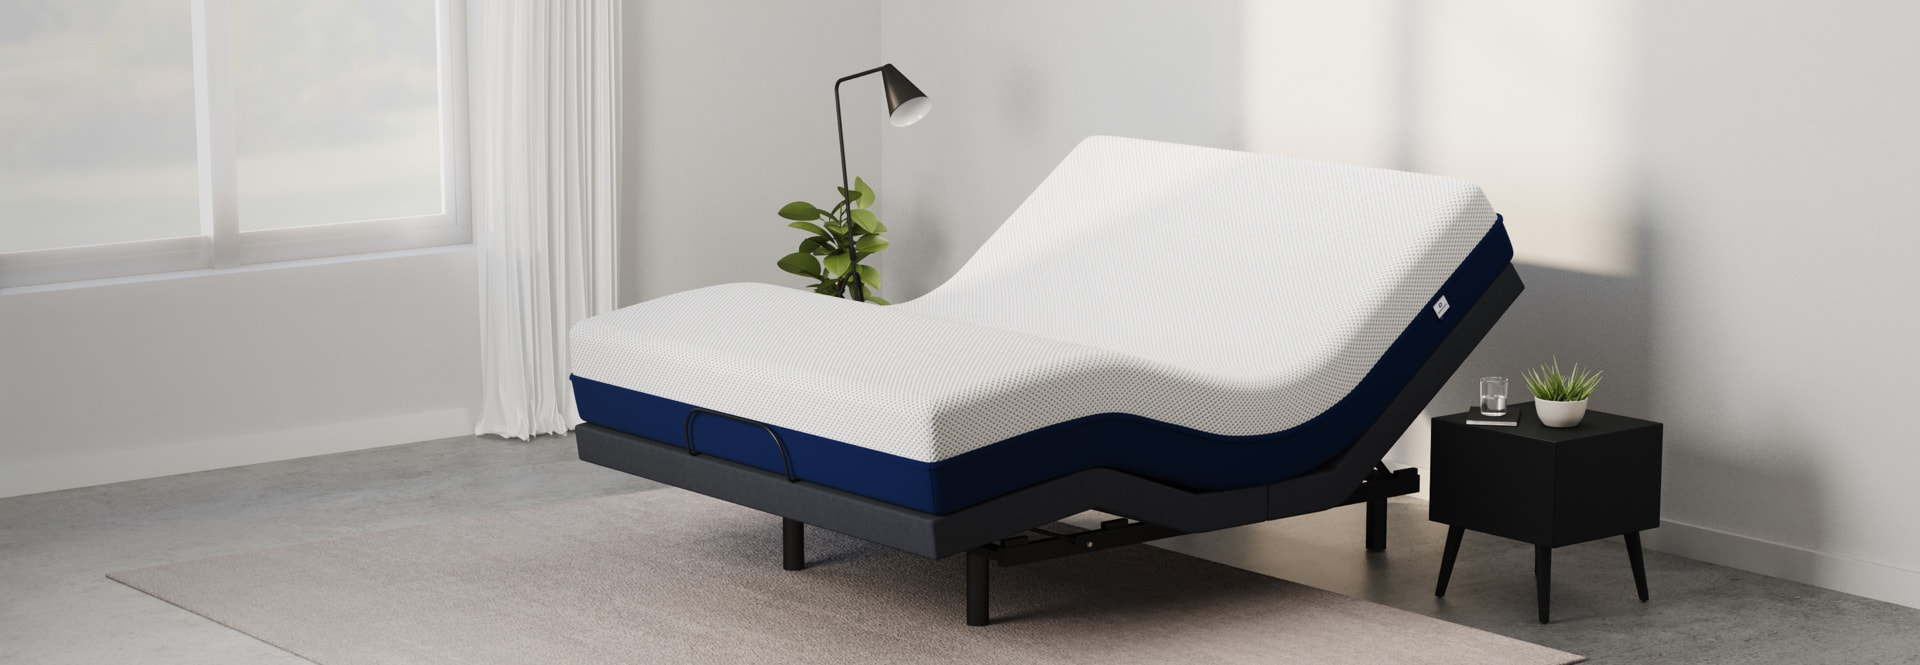 Amerisleep Bed Base